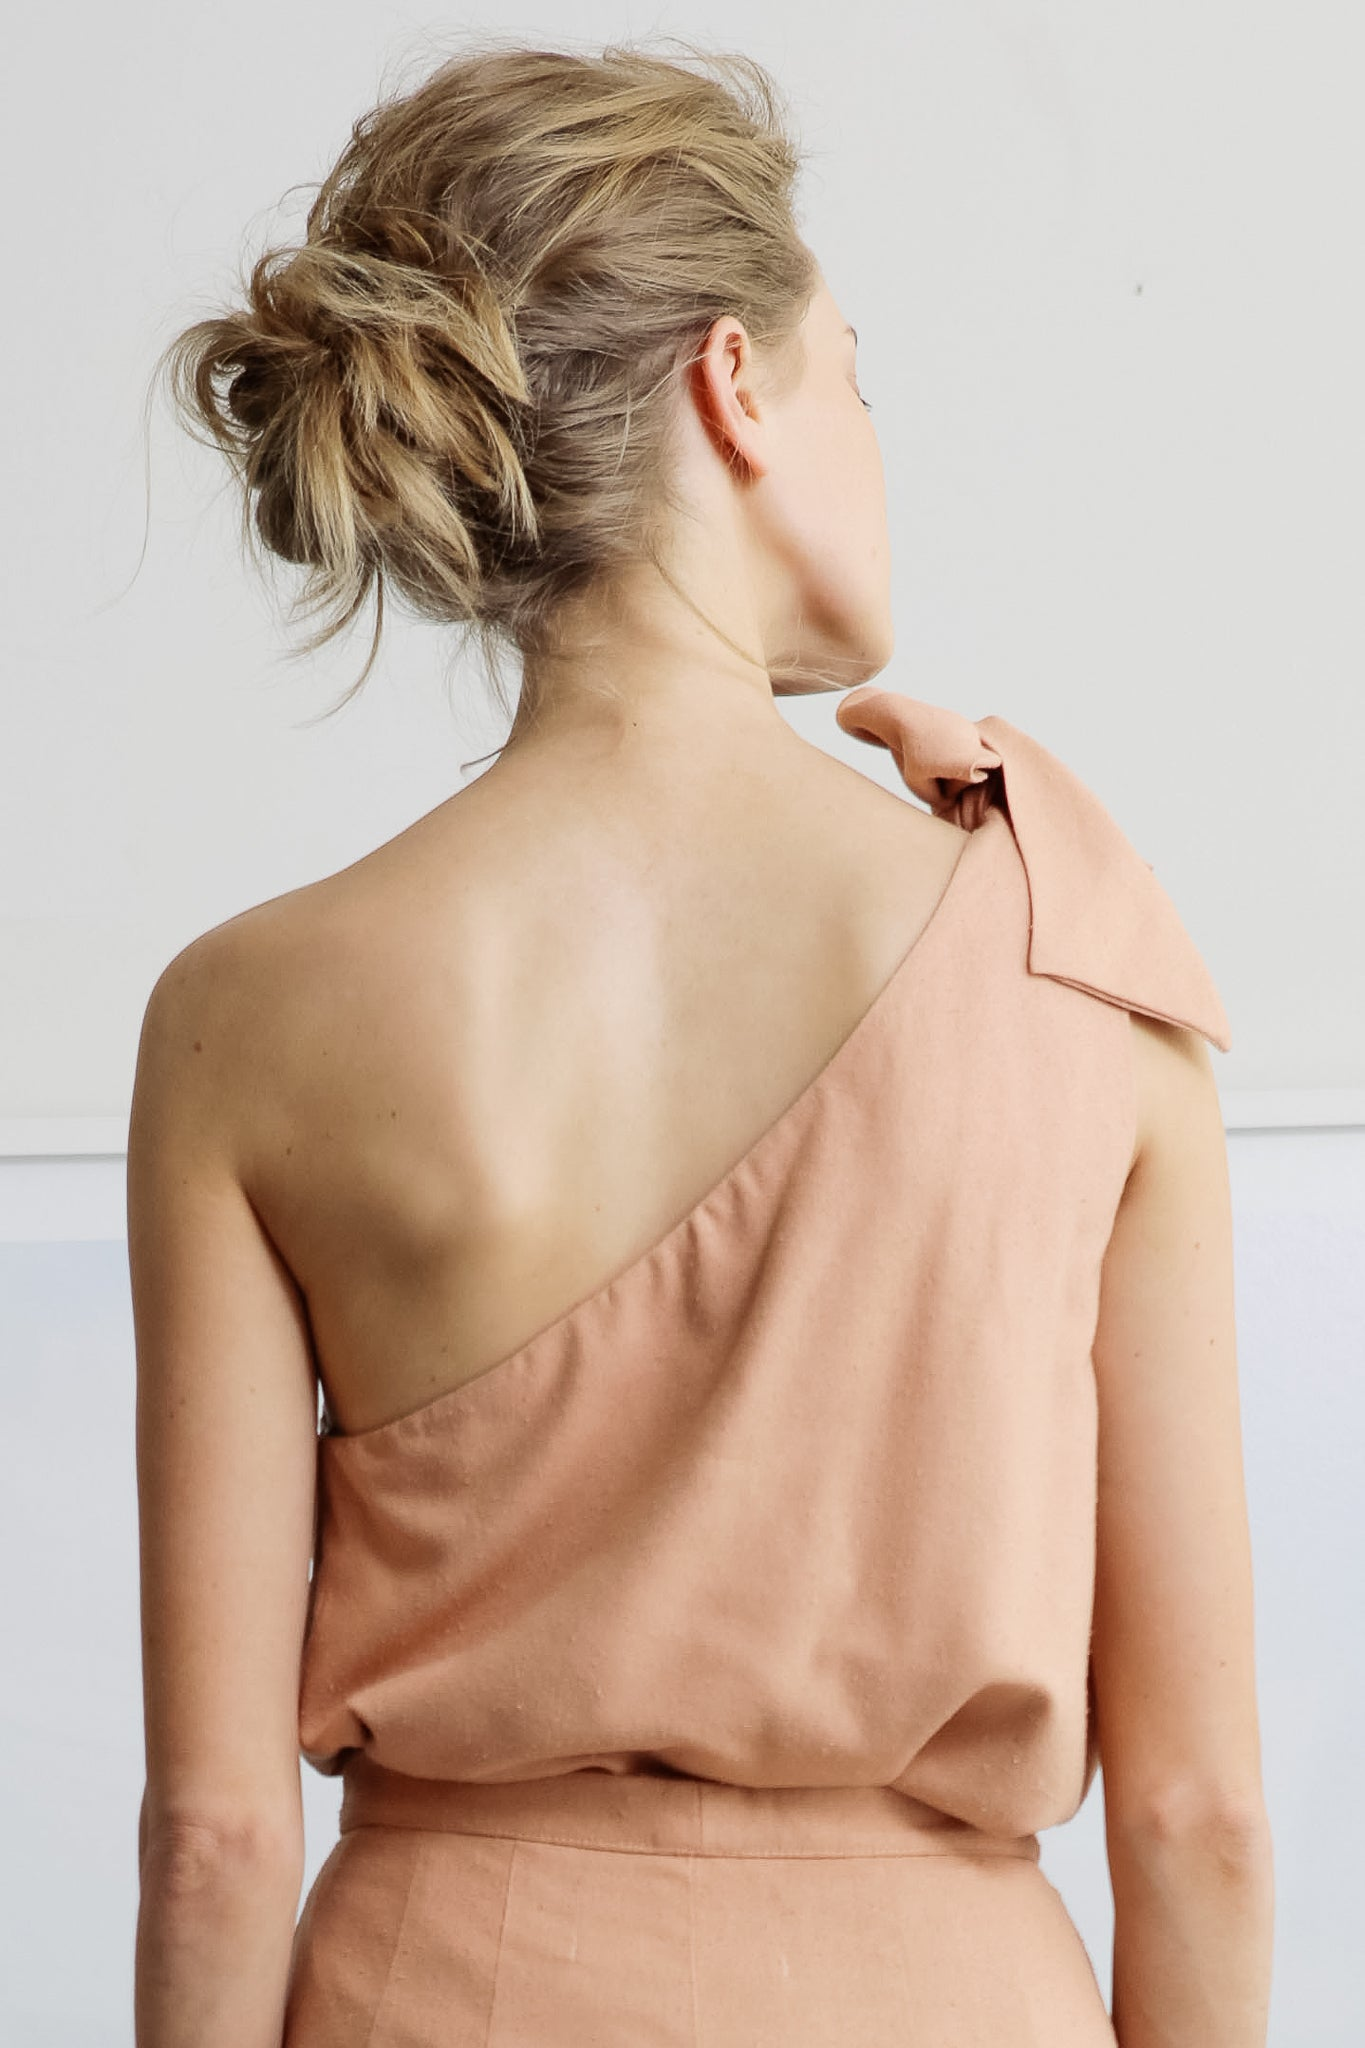 SAINT TROPEZ TOP - BLUSH